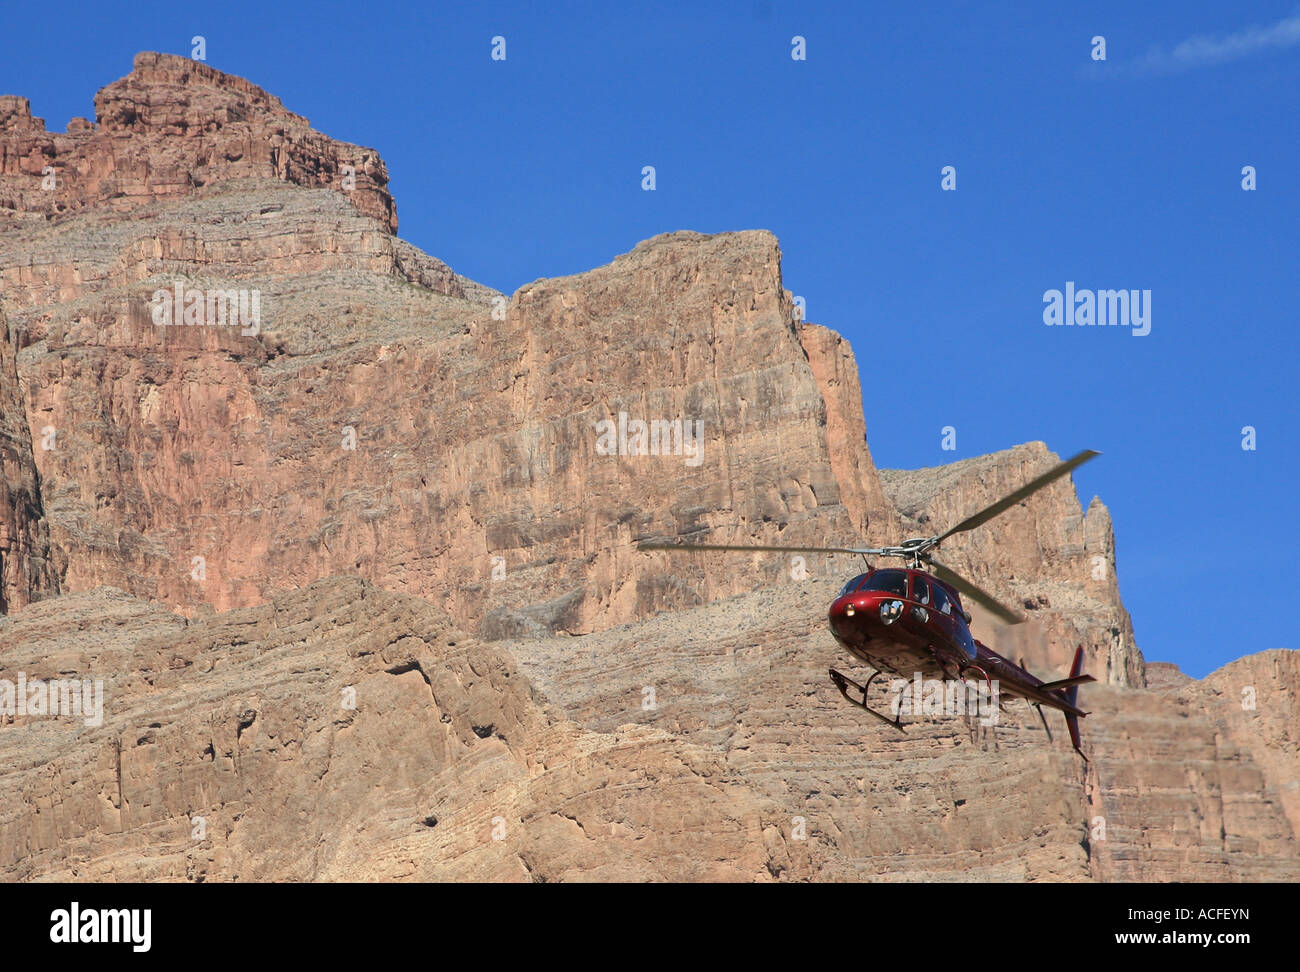 Helicopter trip into the Grand Canyon, Arizona USA. - Stock Image